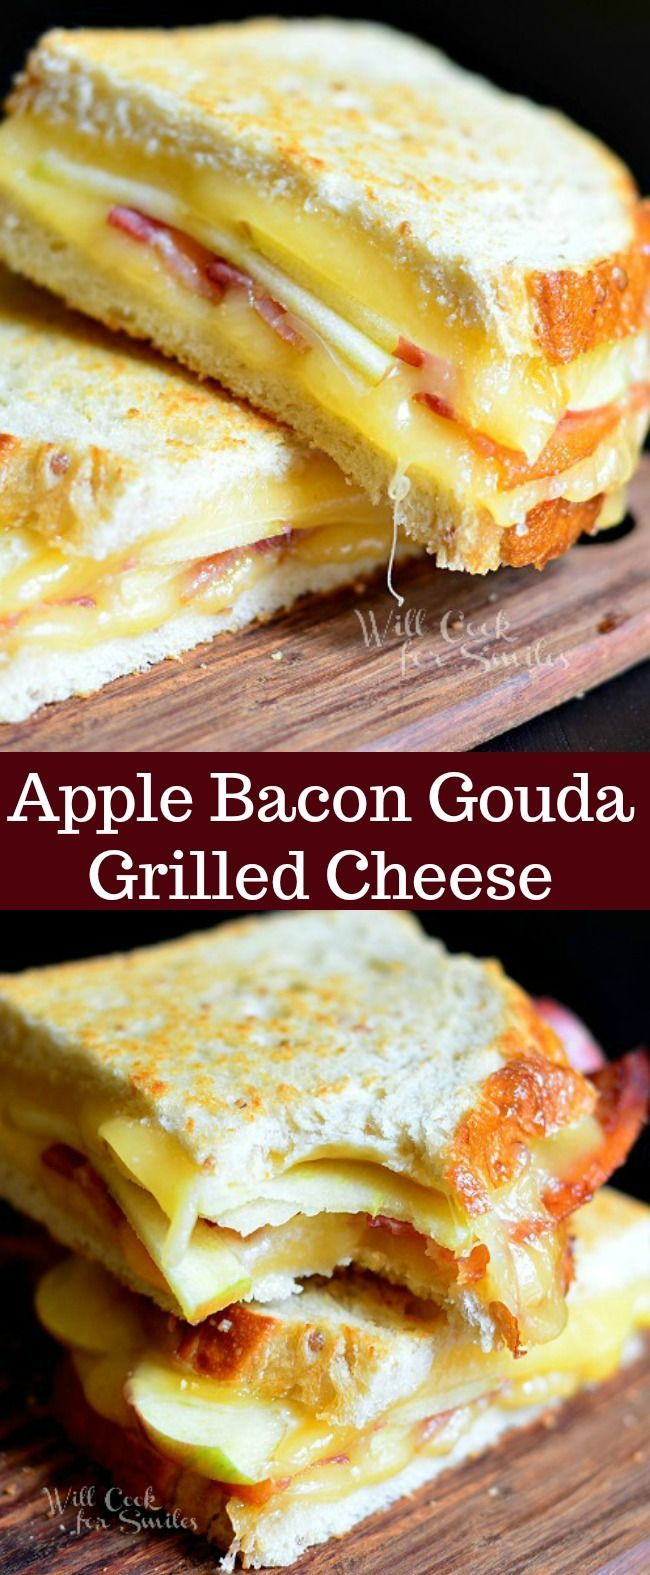 Apple Bacon Gouda Grilled Cheese #sandwichrecipes